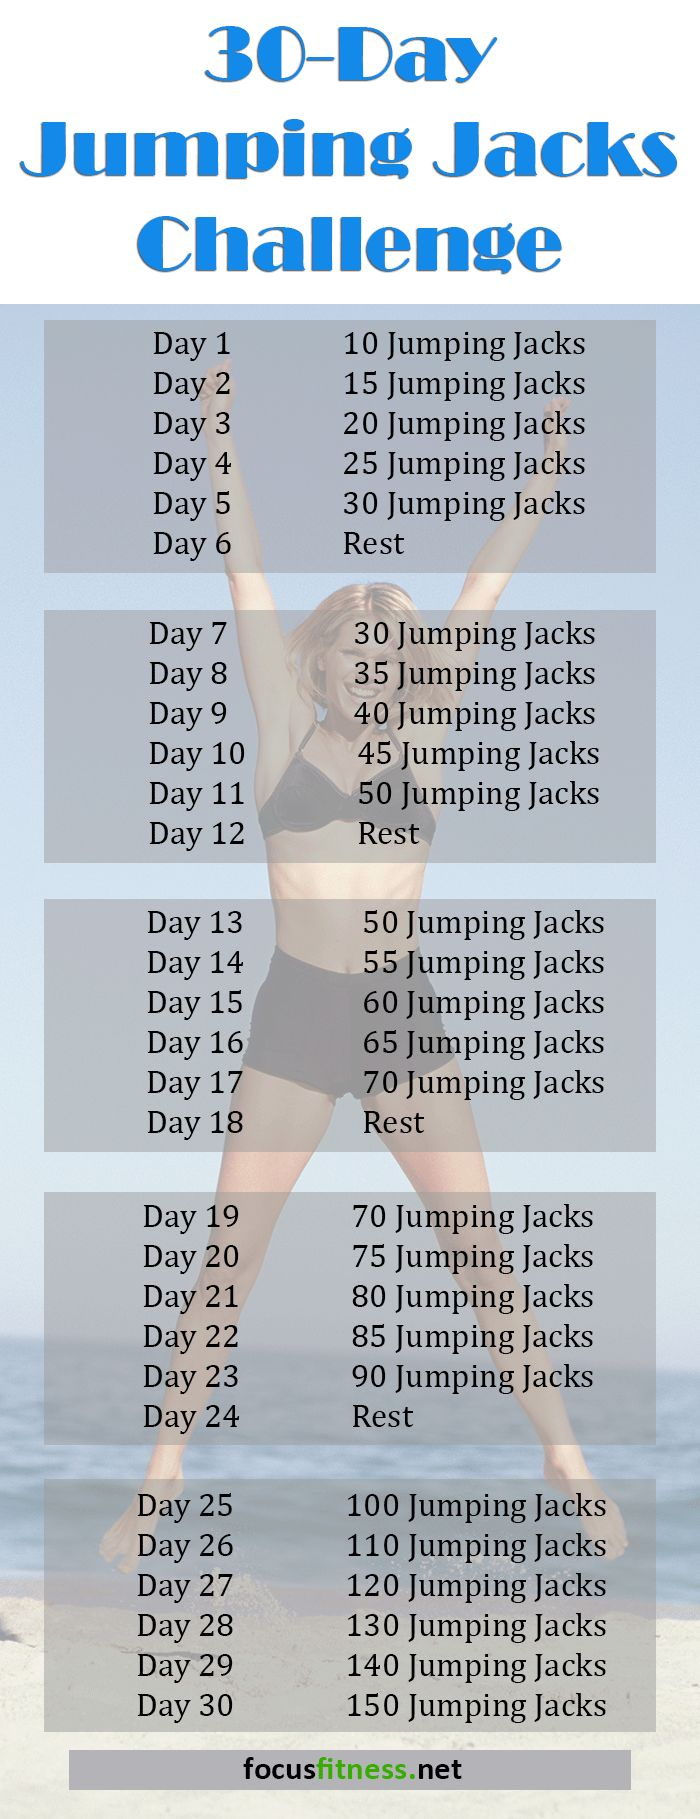 30 Day Jumping Jacks Challenge That Works!